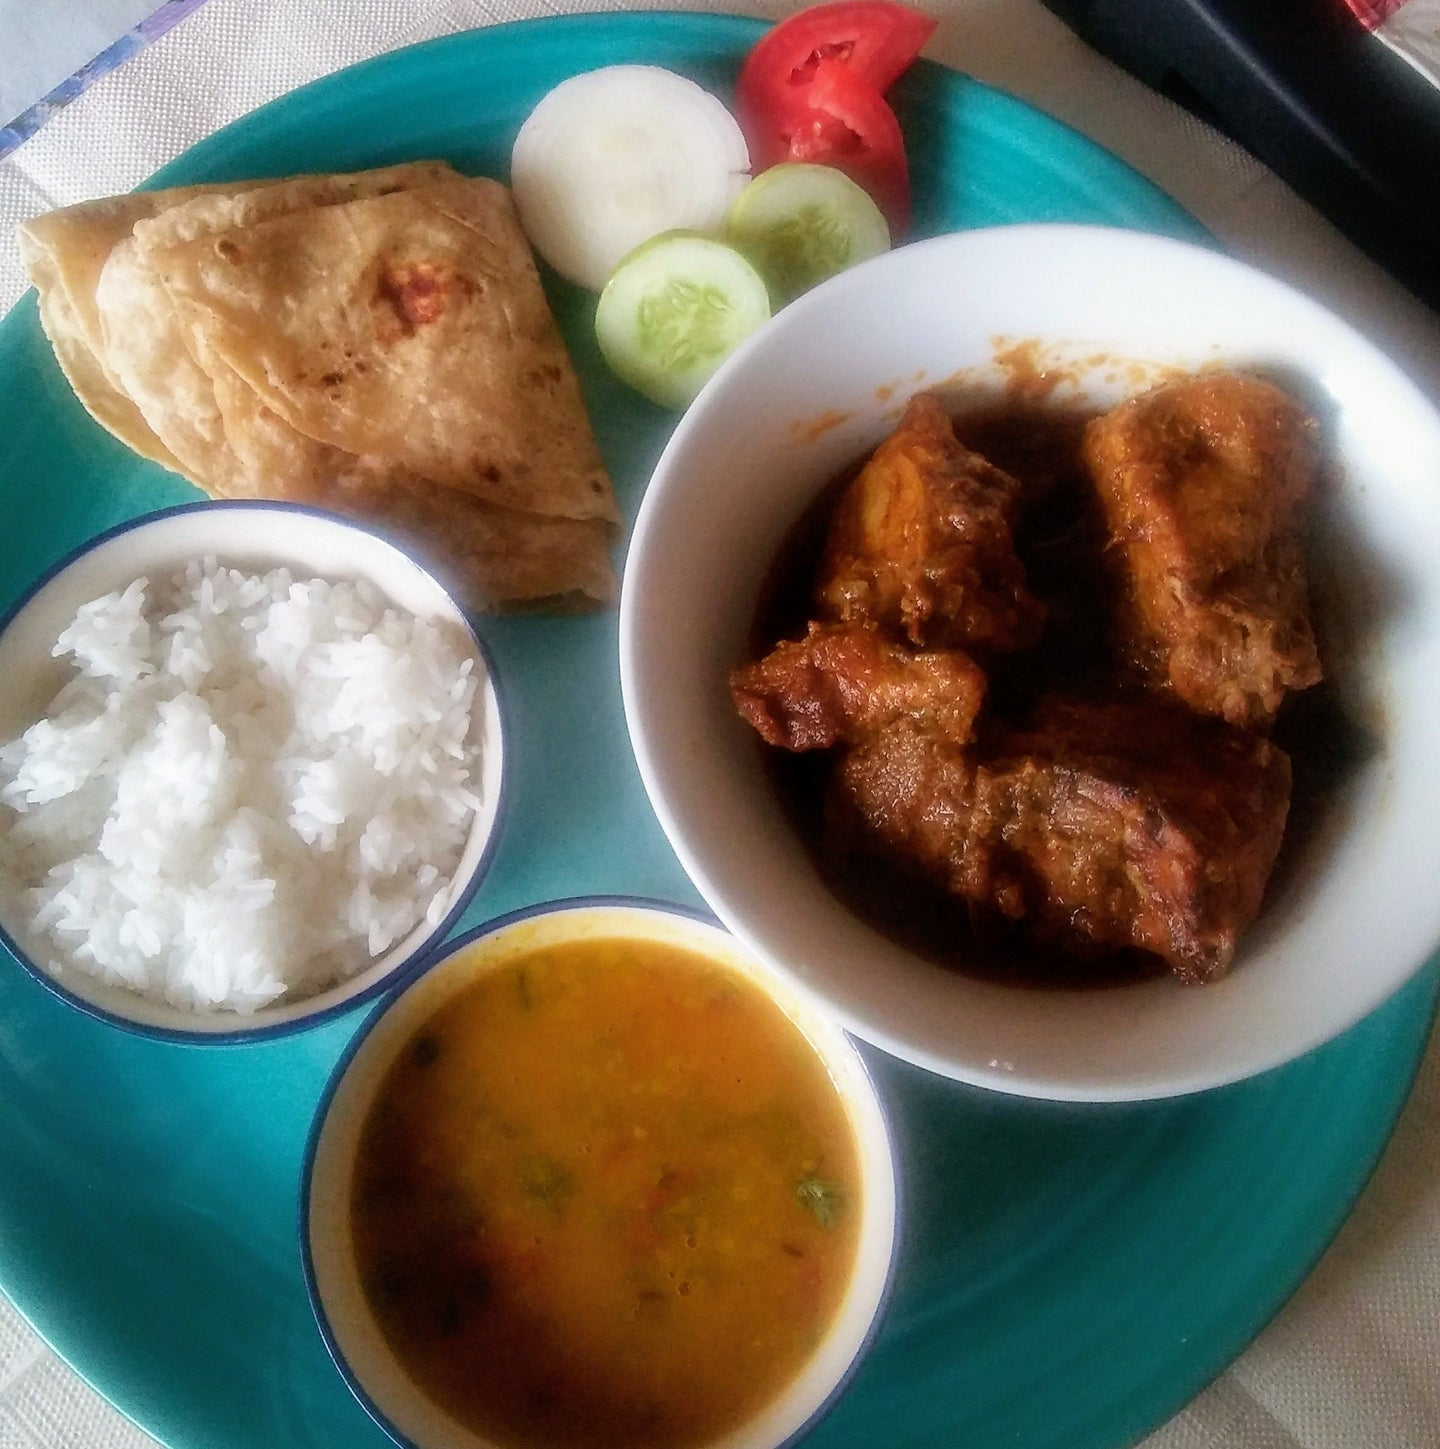 Chicken Curry with Chapatti(3) Rice & Dal Tadka & Salad